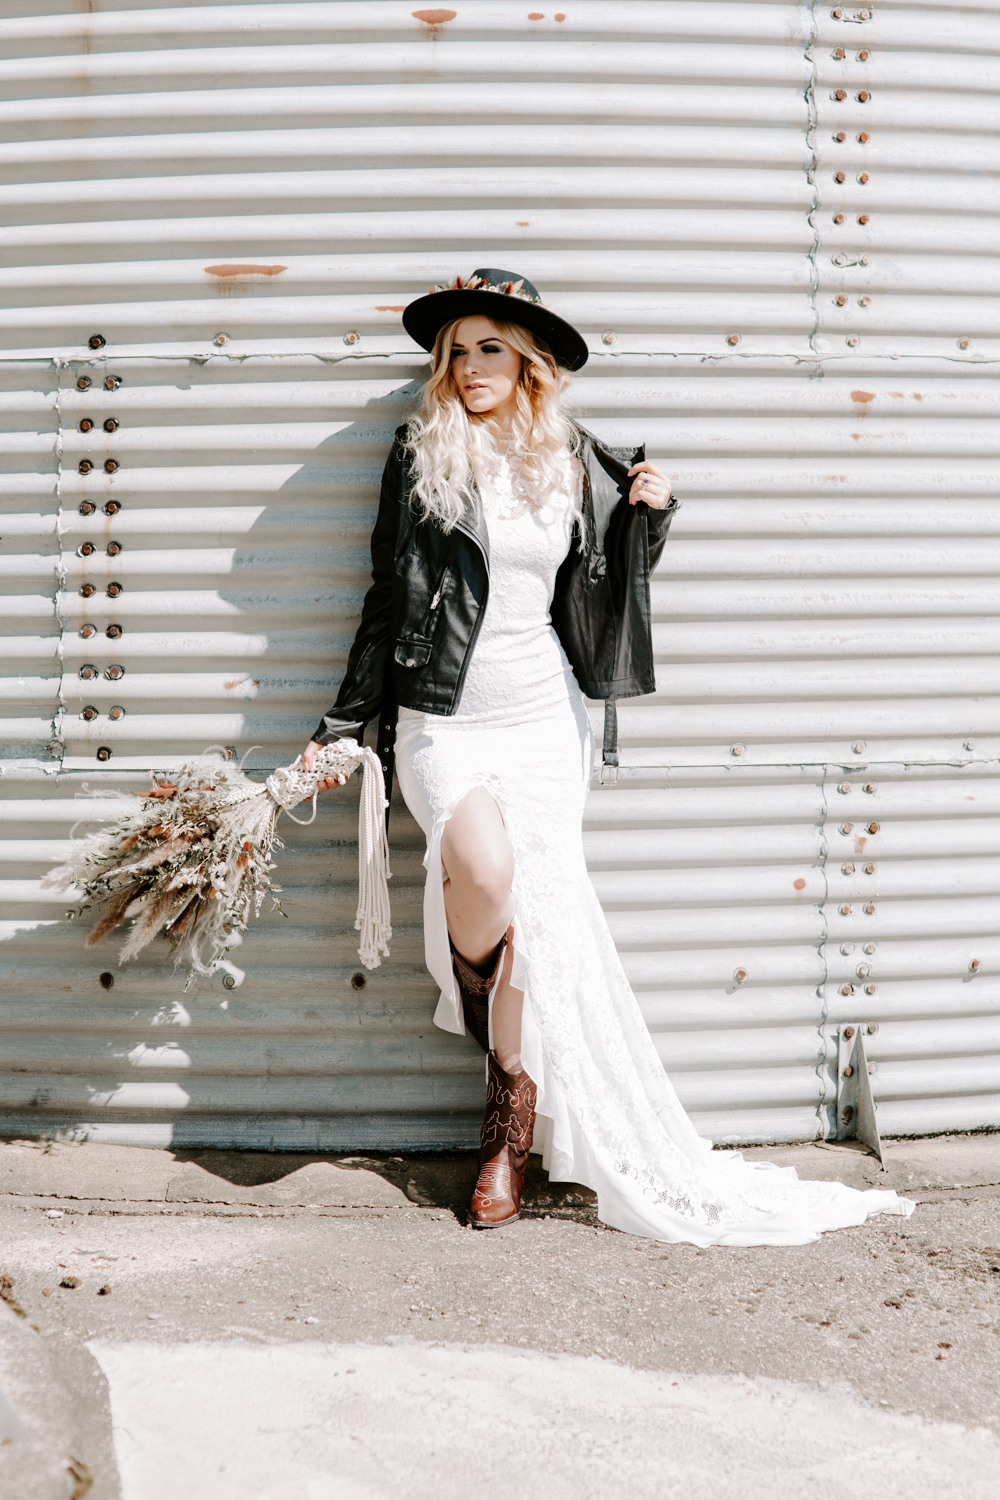 Bride wearing leather jacket and boho hat against a